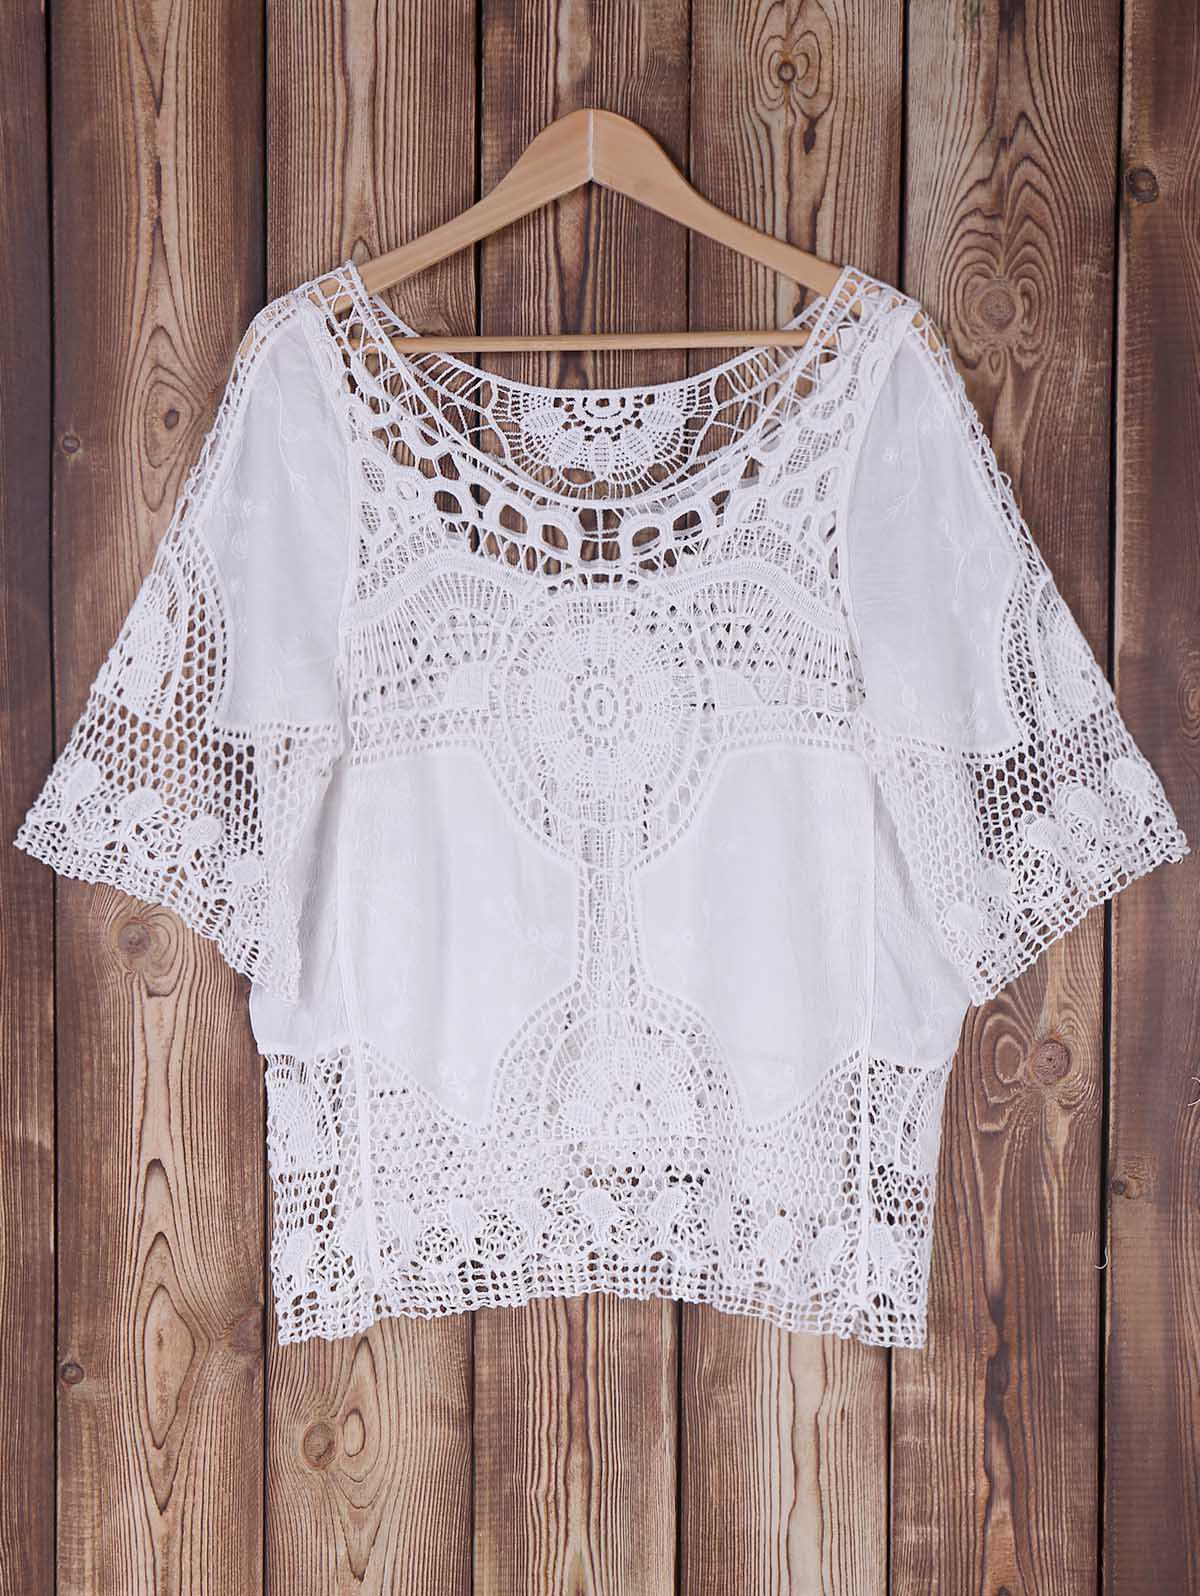 Openwork Bat Sleeve Cover -Up - WHITE ONE SIZE(FIT SIZE XS TO M)